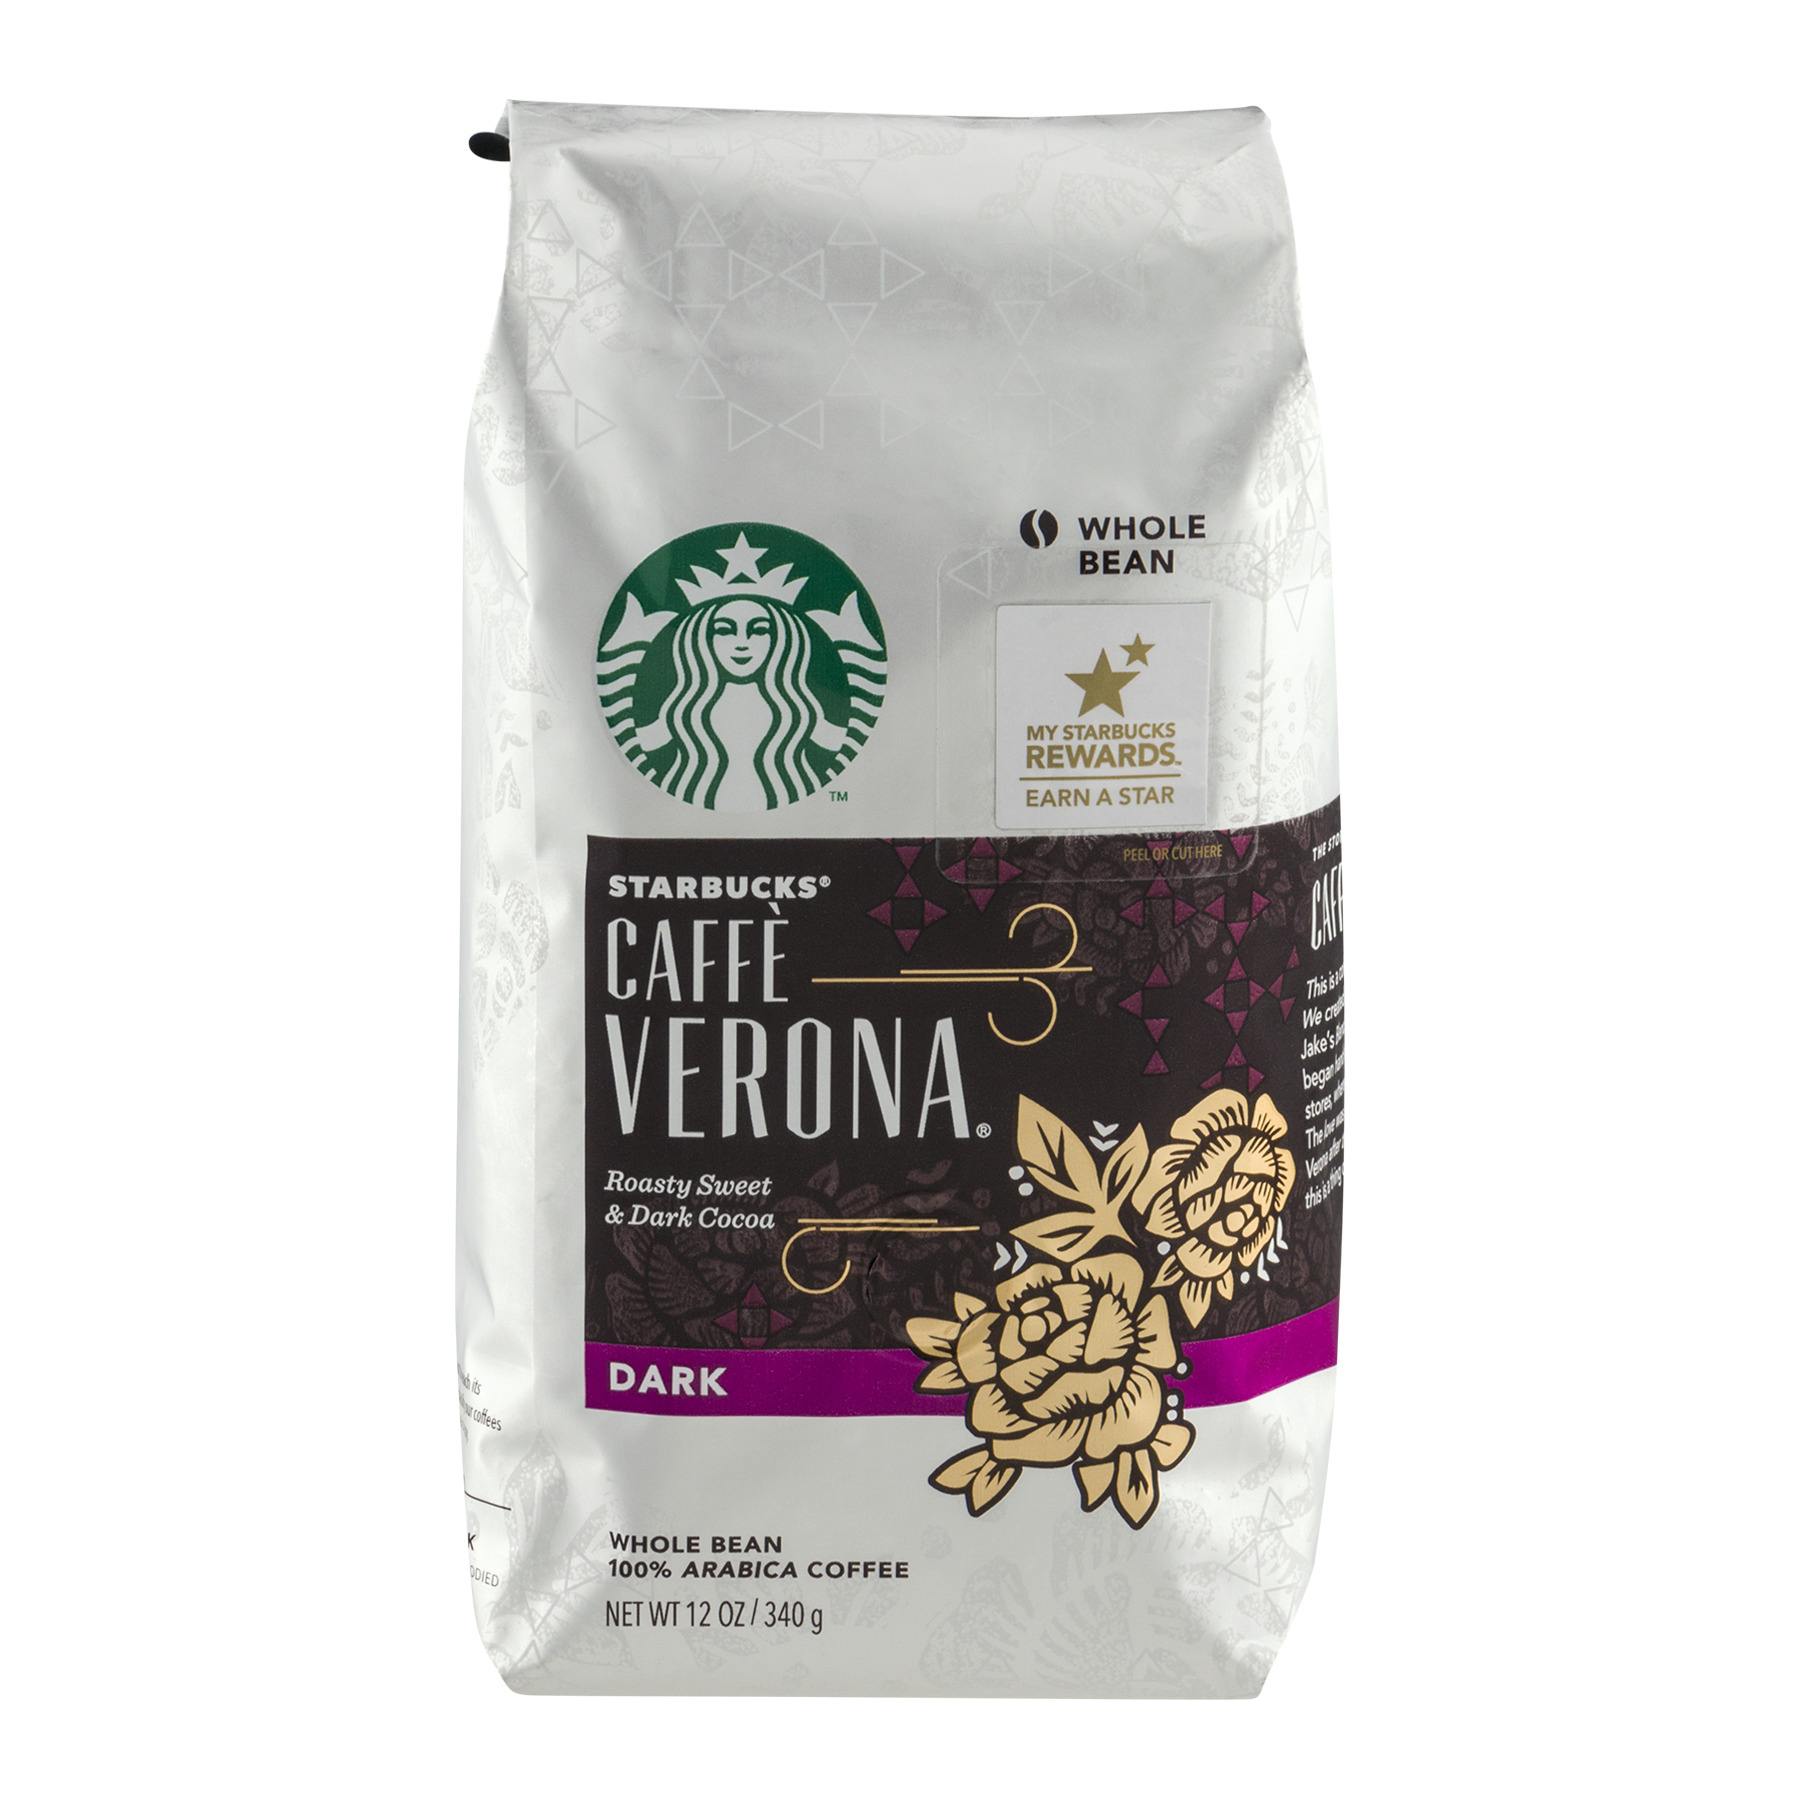 Starbucks Caffe Verona Whole Bean Arabica Coffee Dark, 12.0 OZ